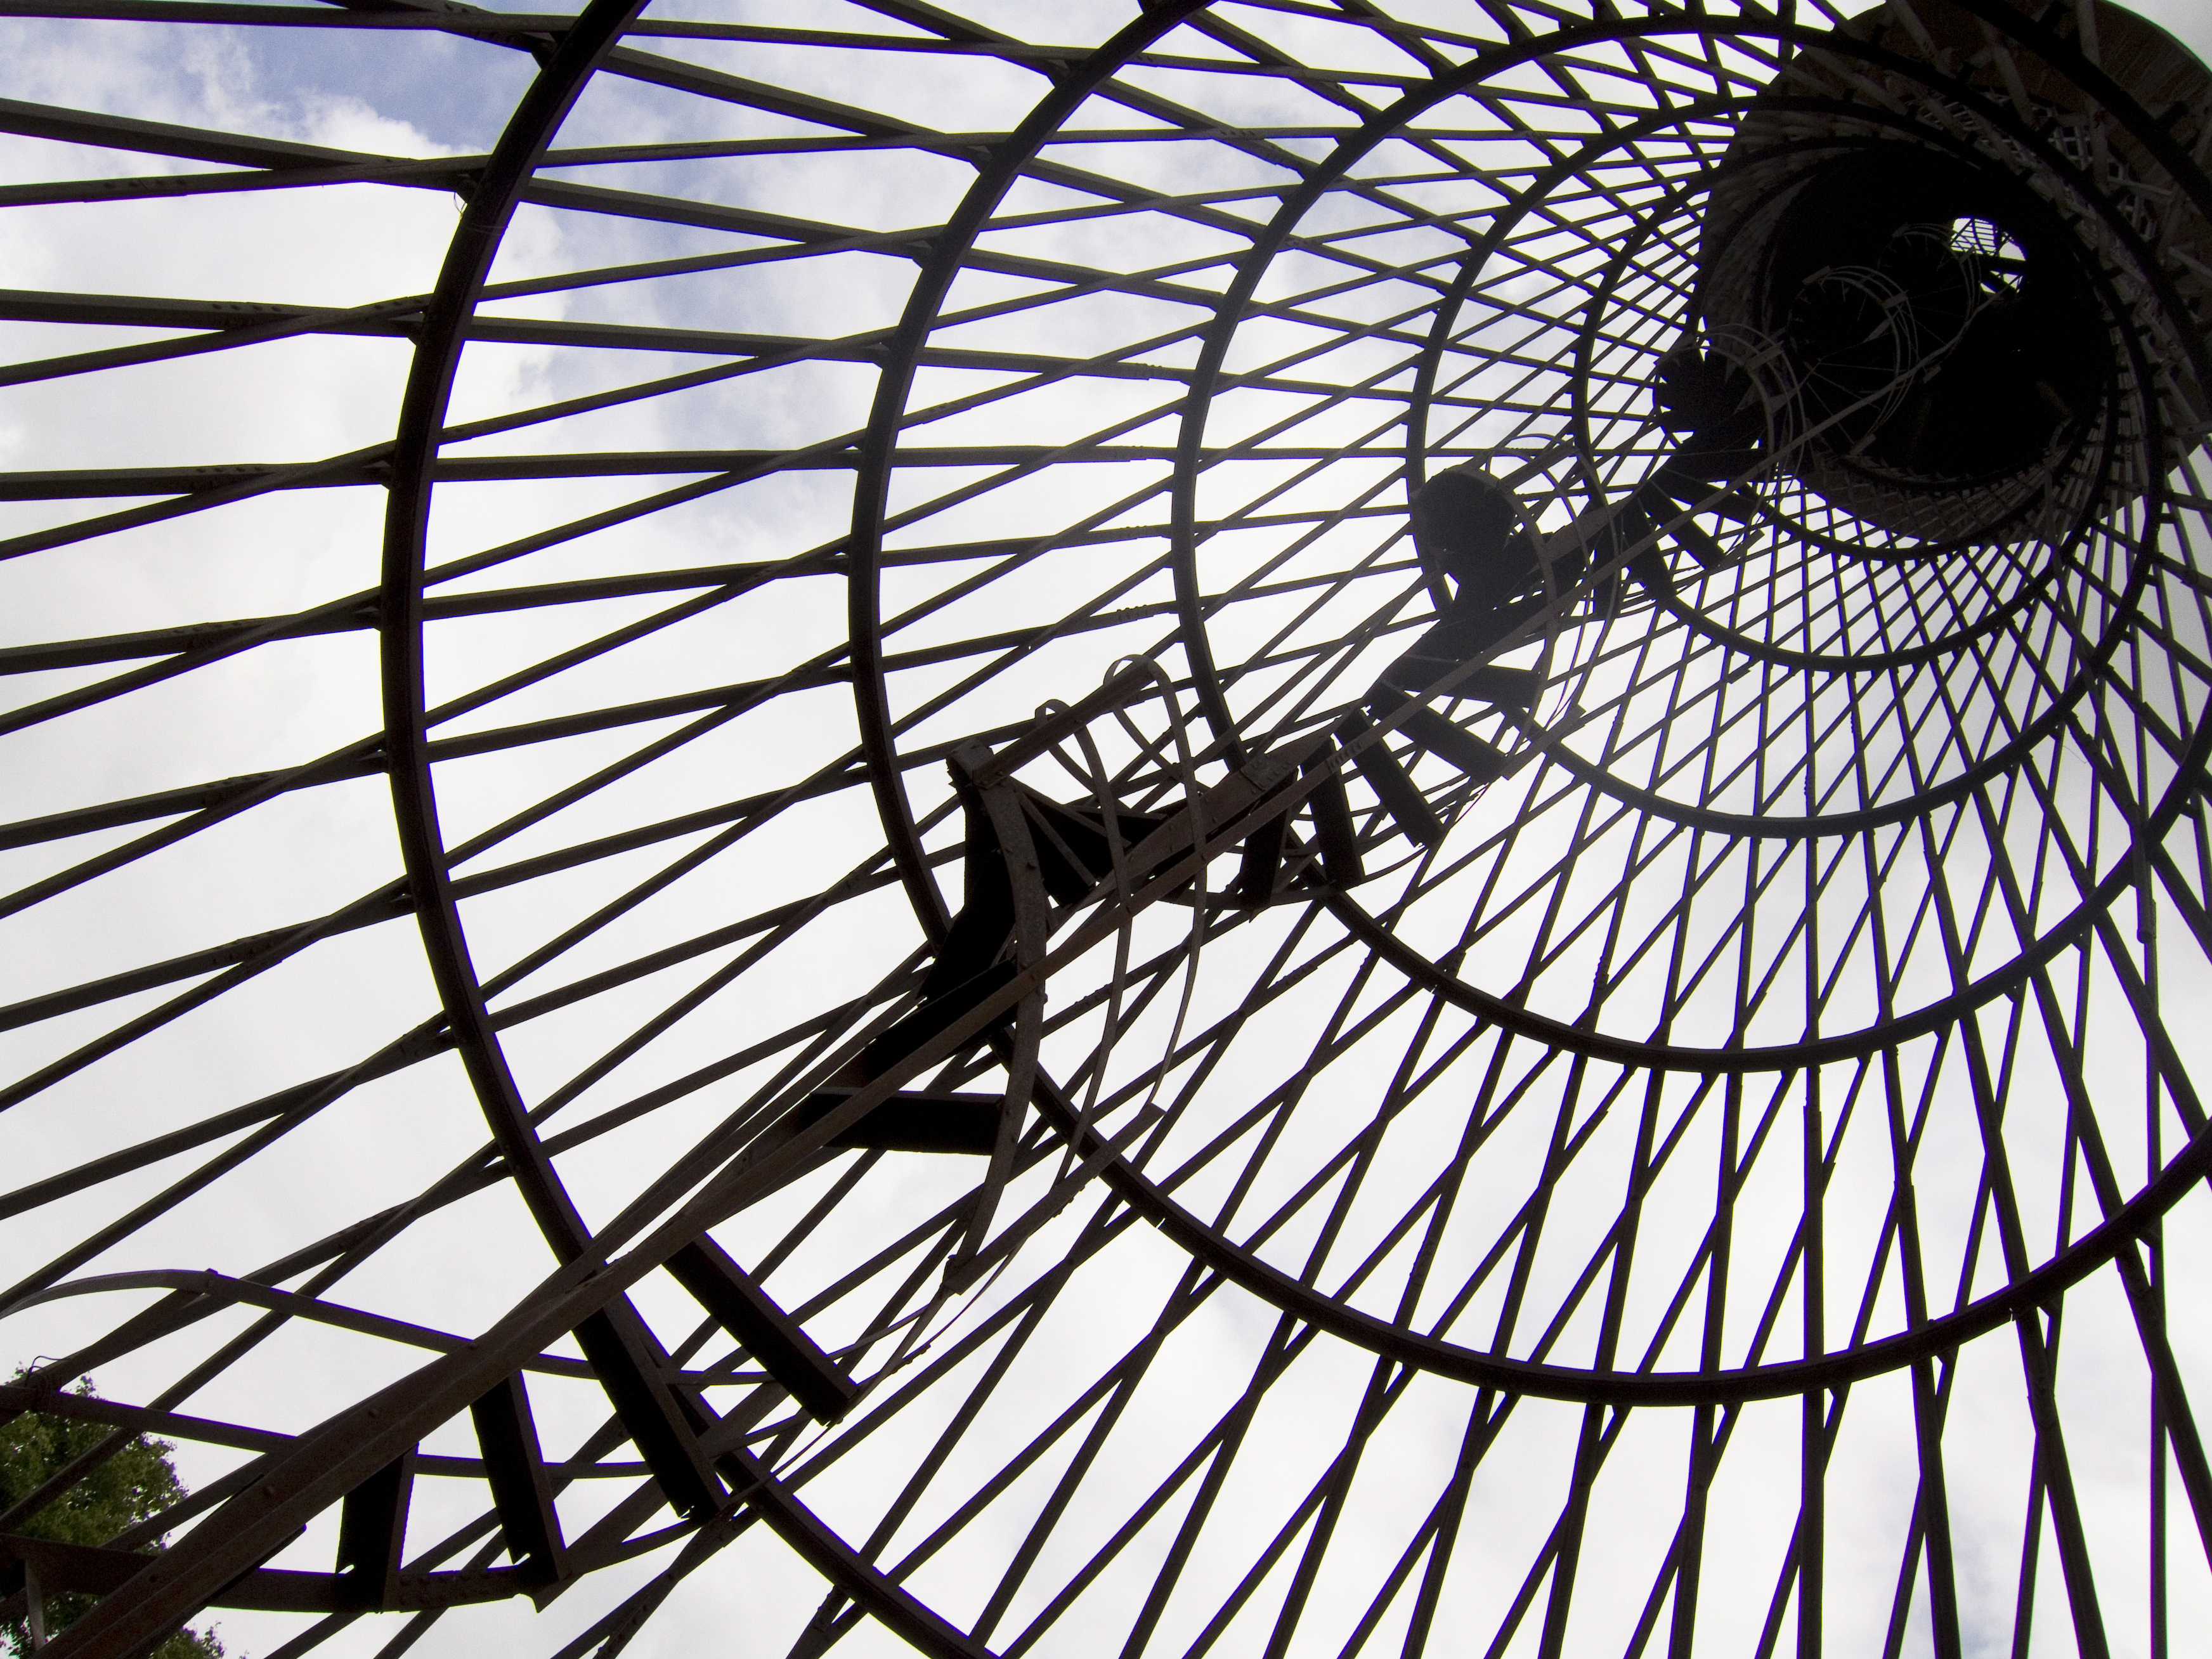 File:Worlds First Hyperboloid structure photo by Sergei